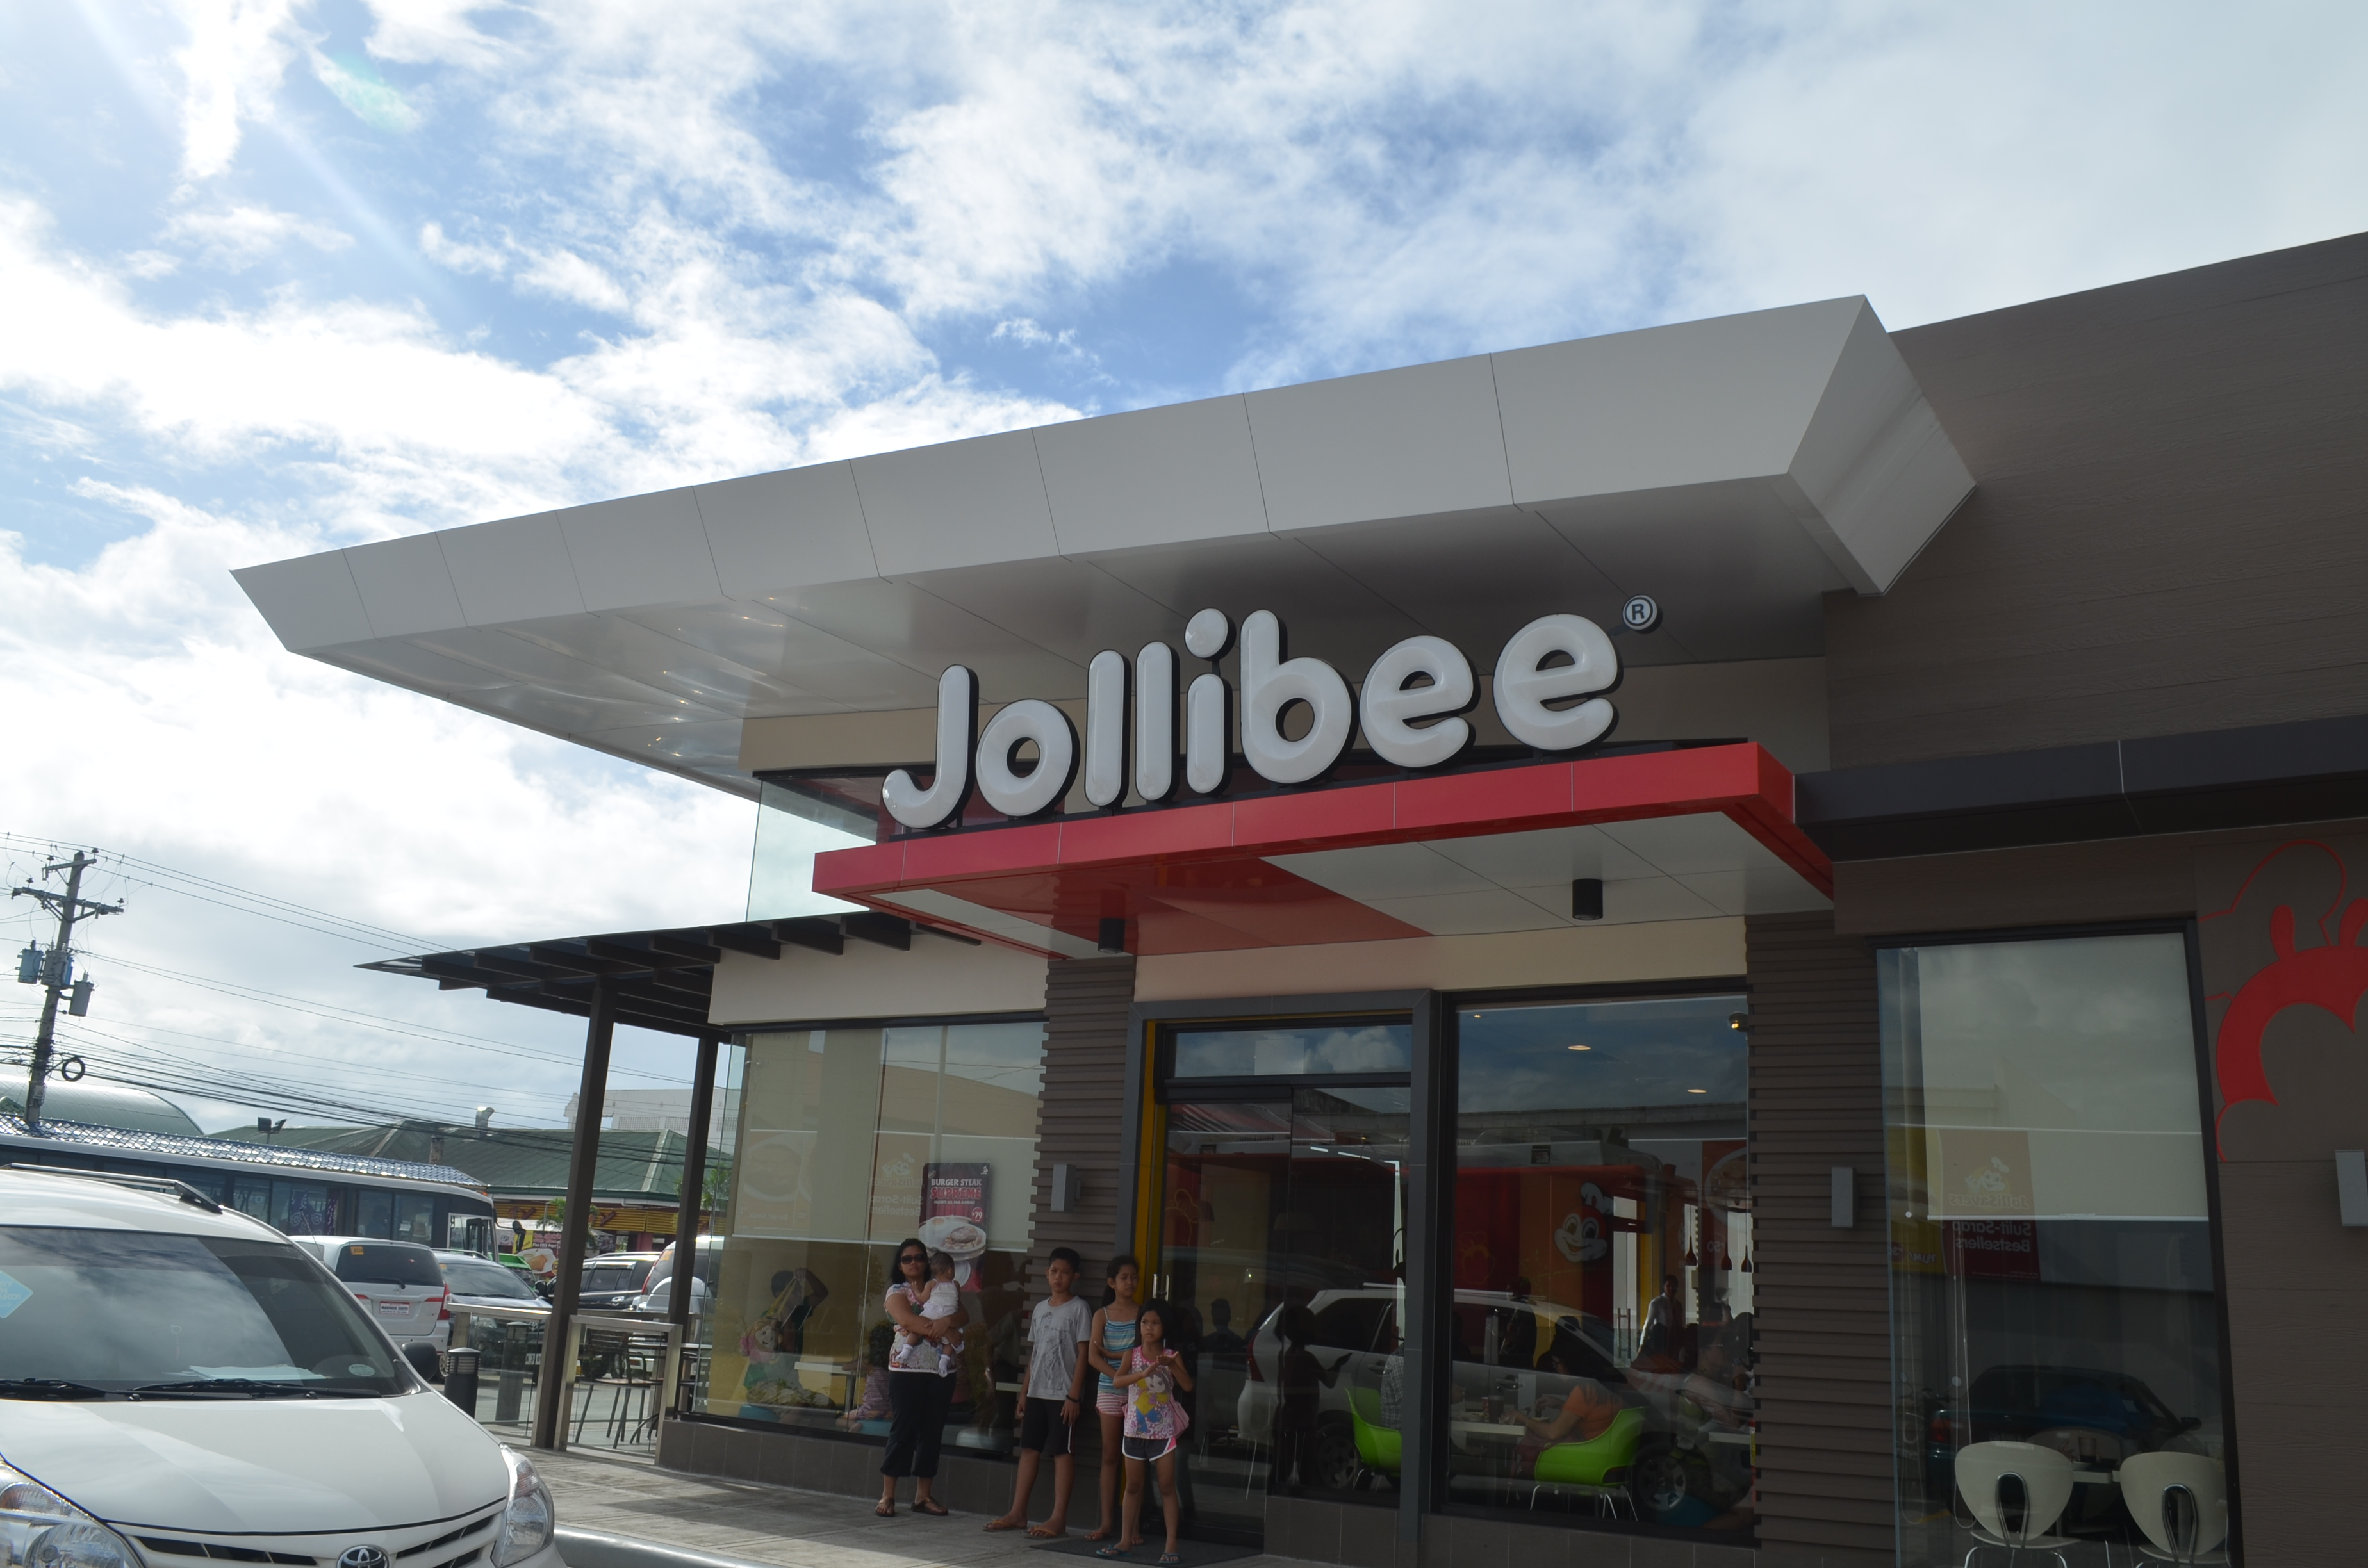 jollibee acquire mang inasal 08052011 jollibee – philippine fastfood restaurant chain  another investment in early 2012 saw it acquire a stake in  jollibee swallows mang inasal.